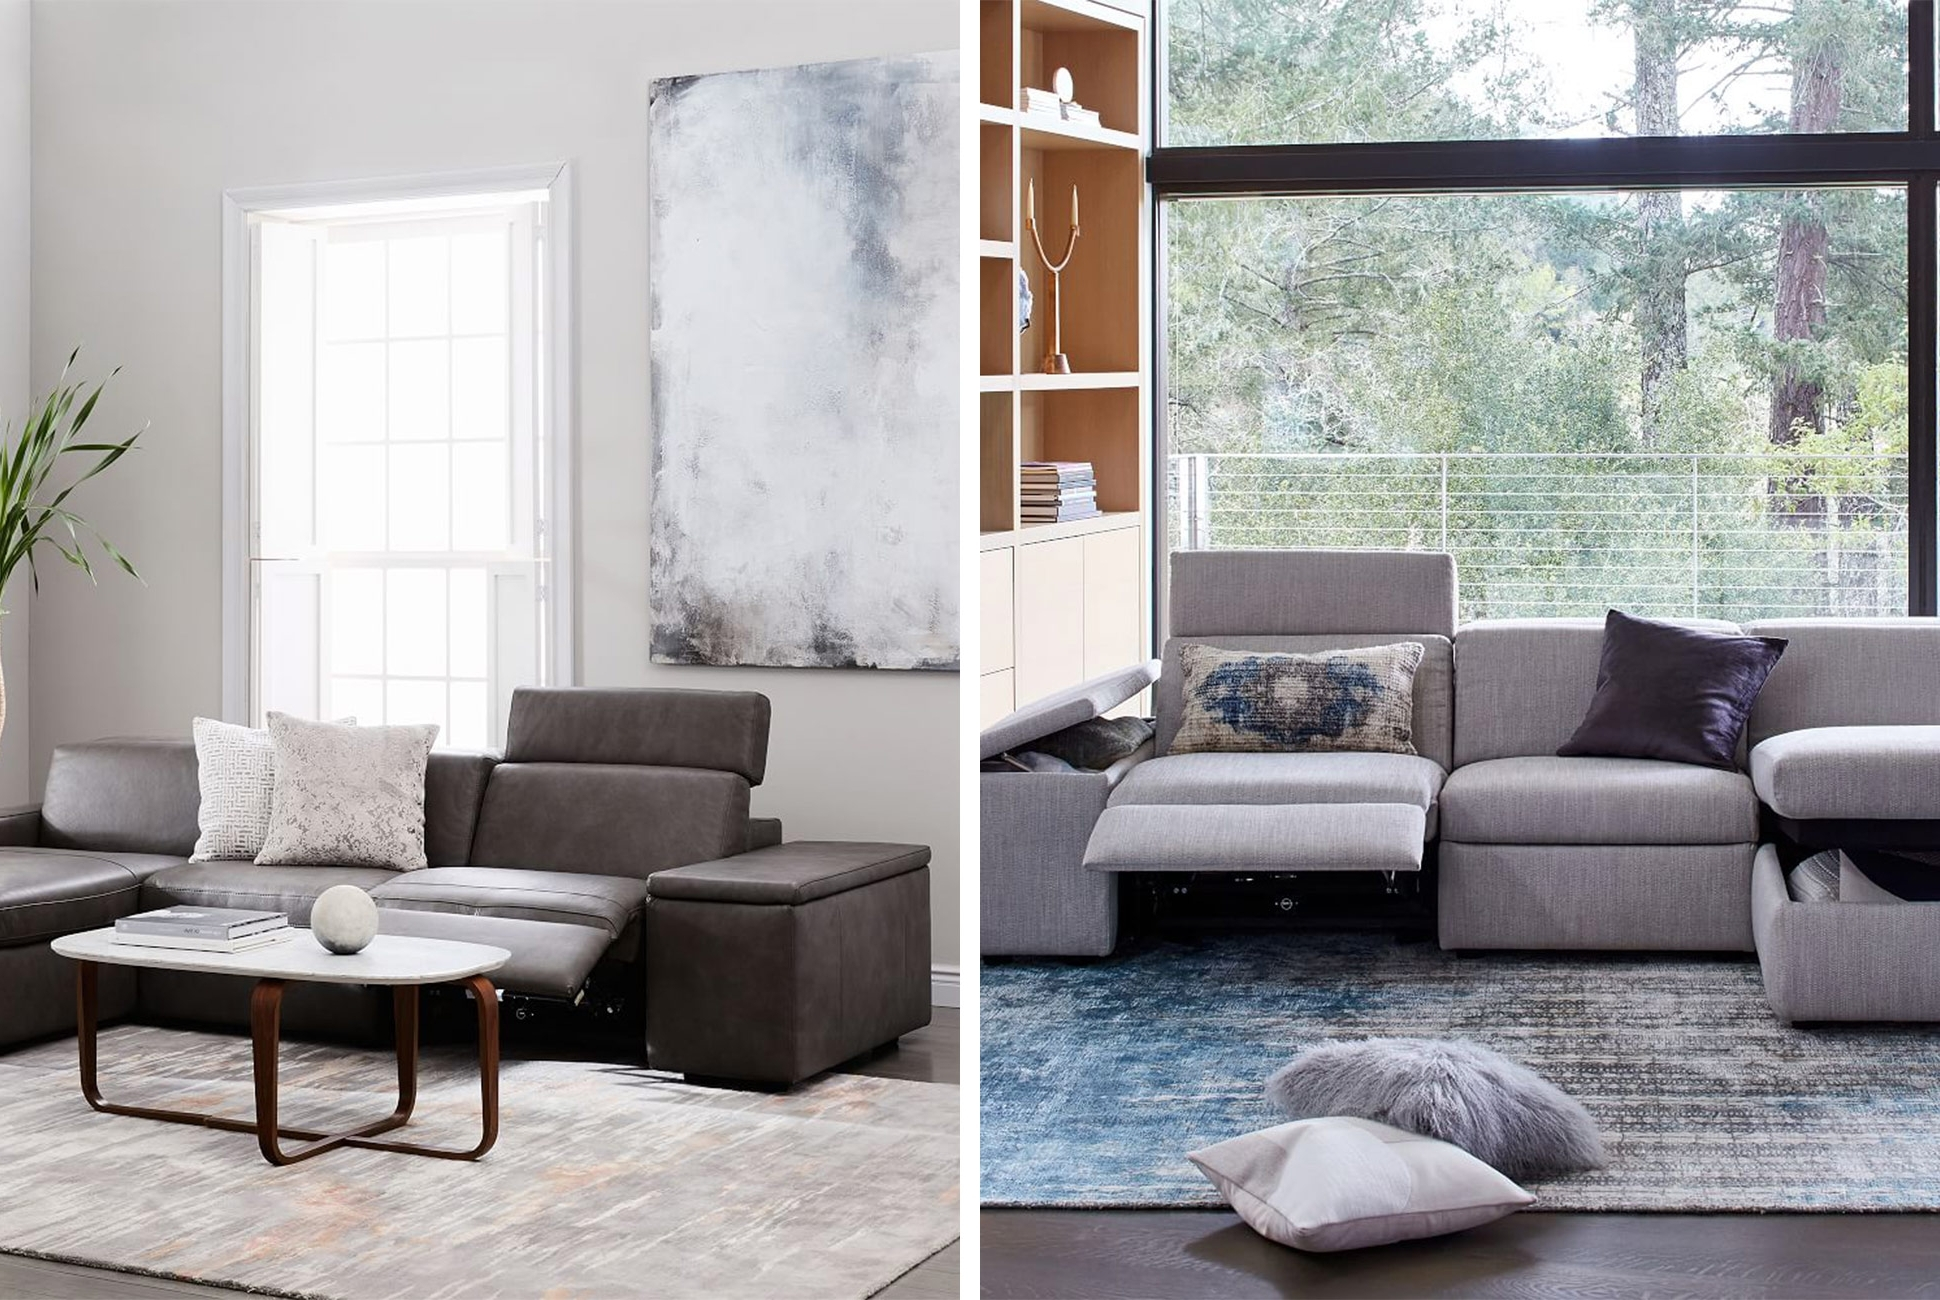 West Elm Sectional Sofas Throughout Most Popular West Elm's New Enzo Series Features Recliners And Storage – Gear (View 13 of 15)